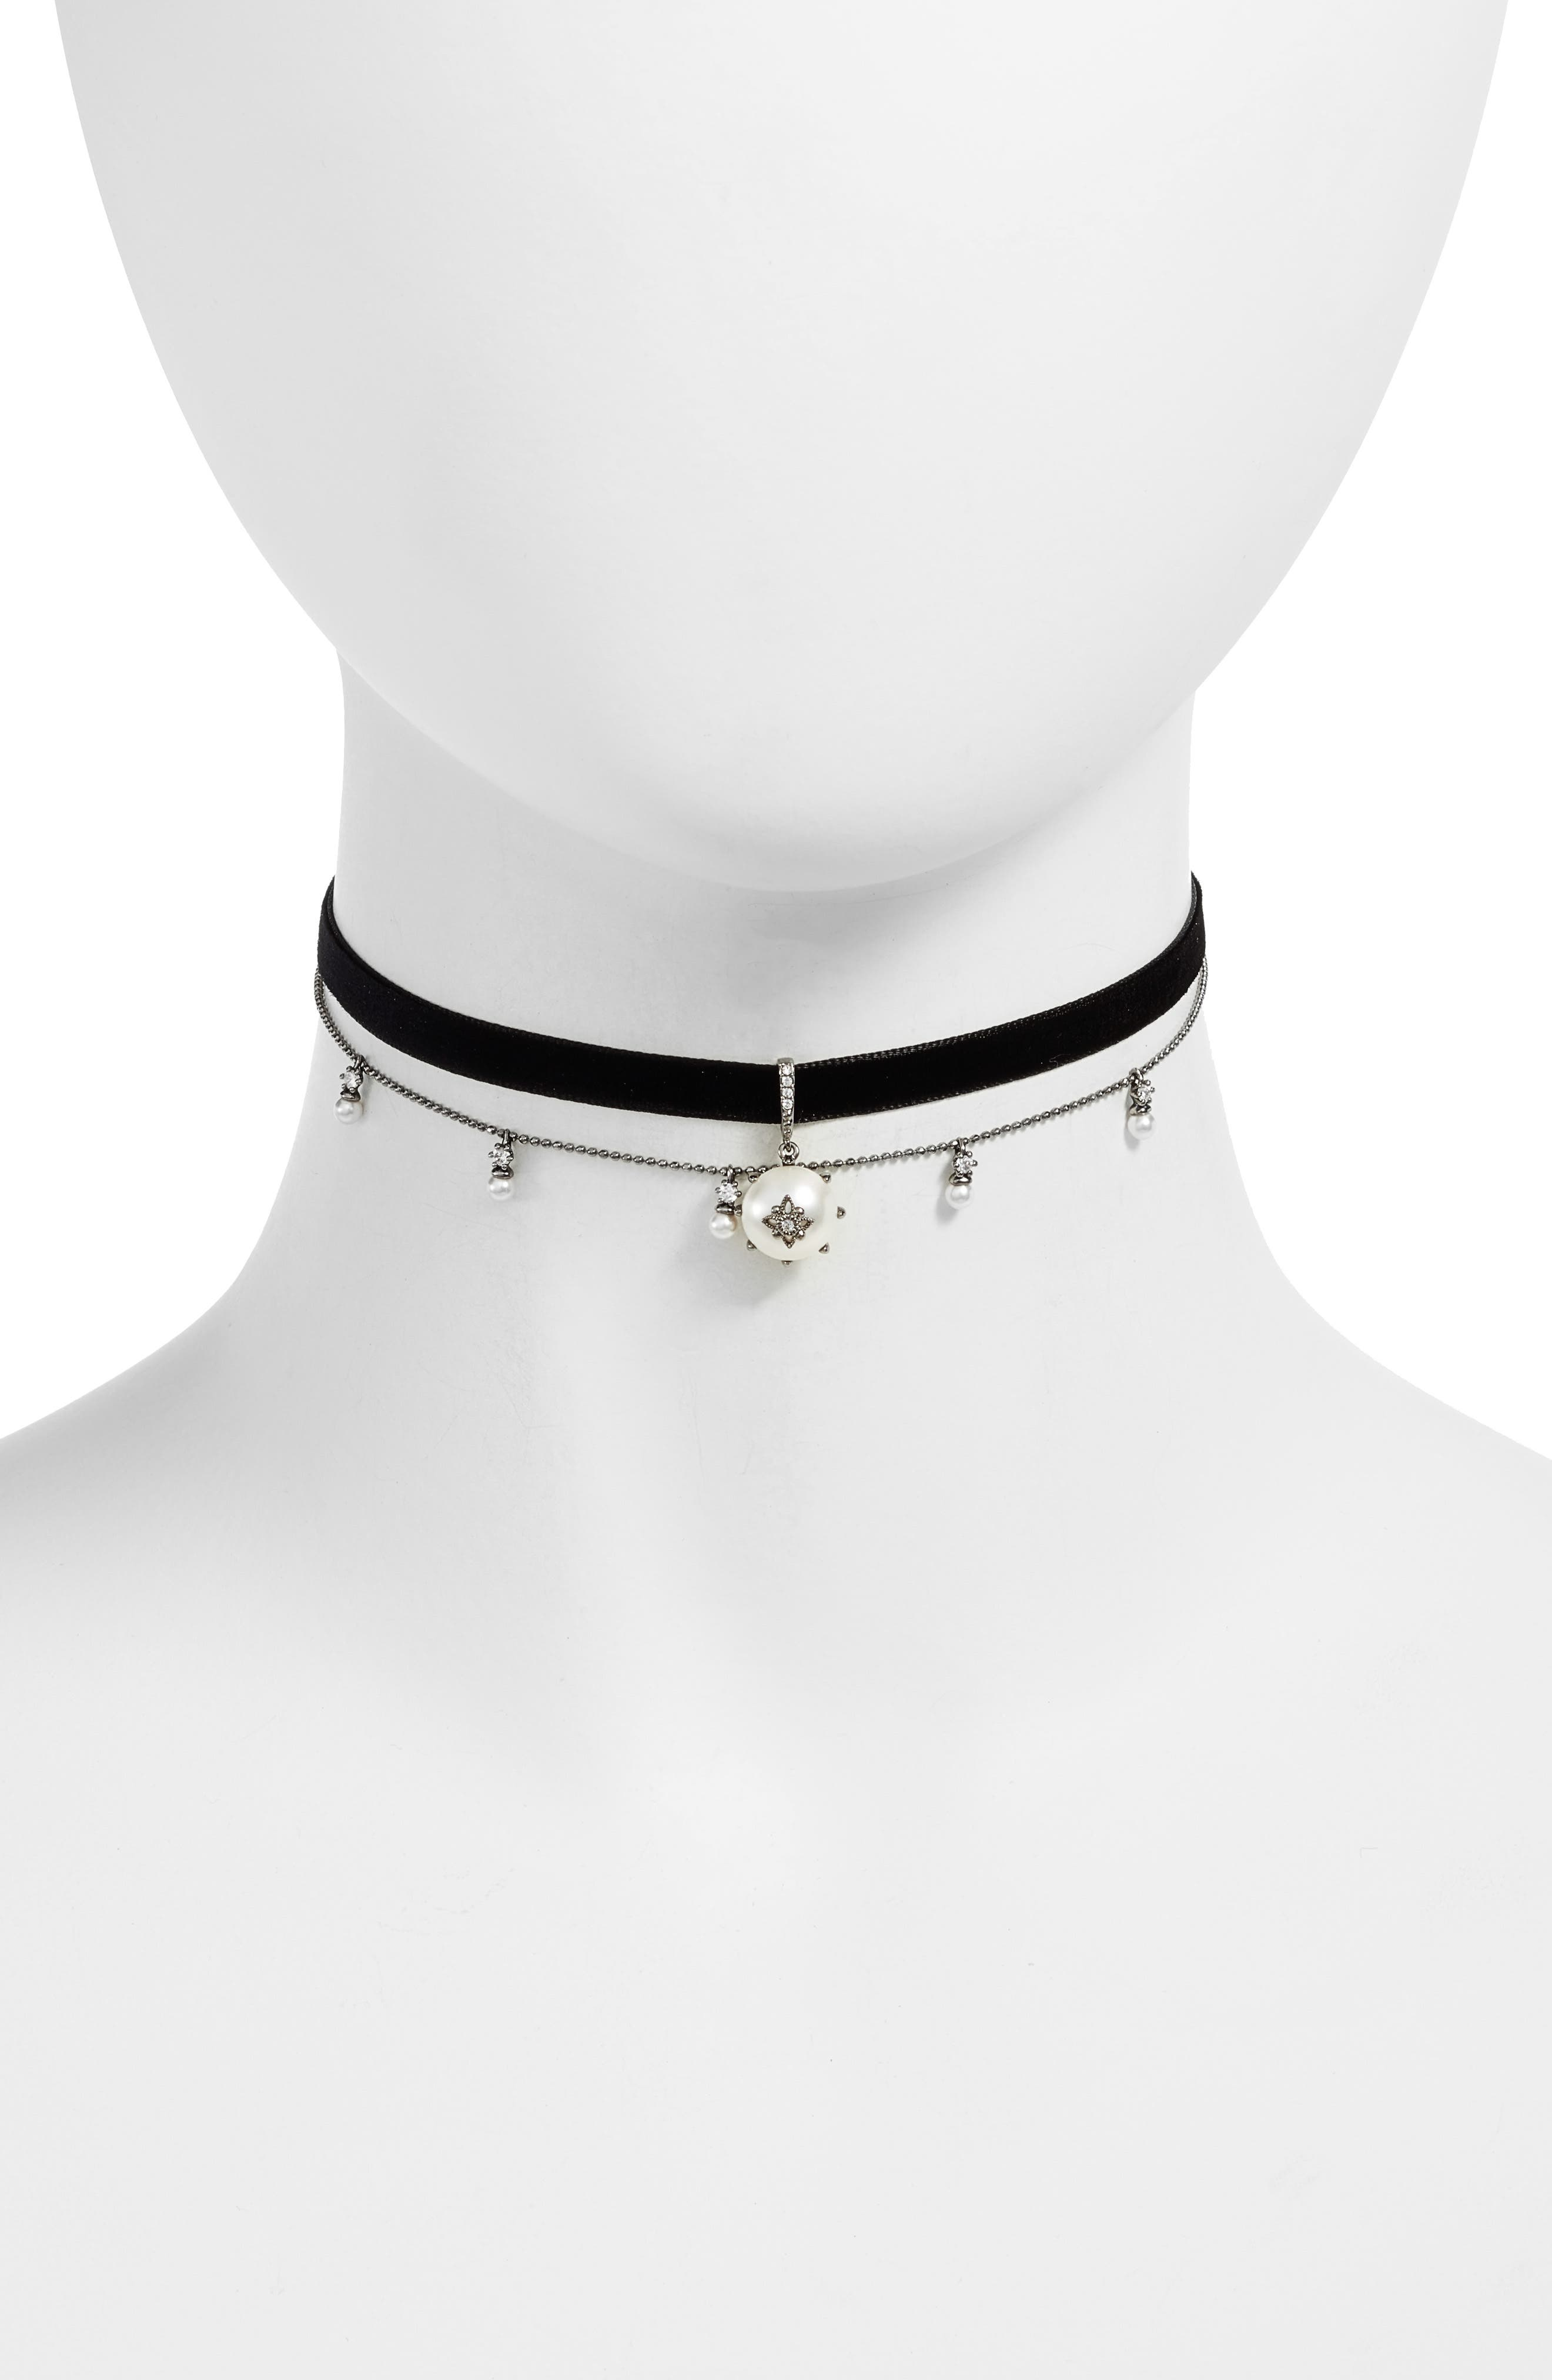 Coquette Faux Pearl Layered Choker Necklace,                         Main,                         color, 100